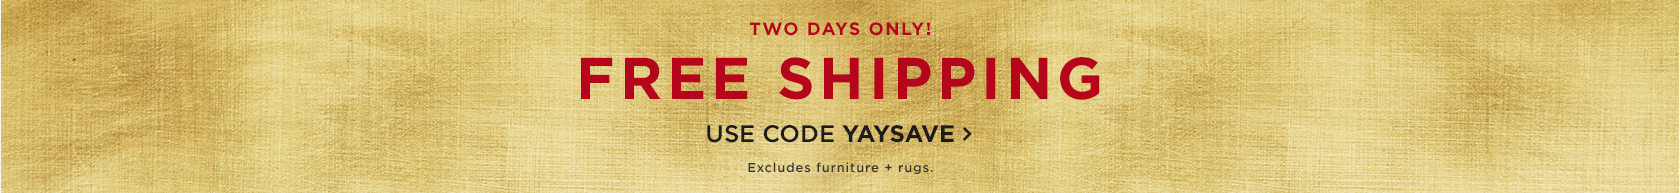 Two Days Only! Free Shipping. Use Code YAYSAVE